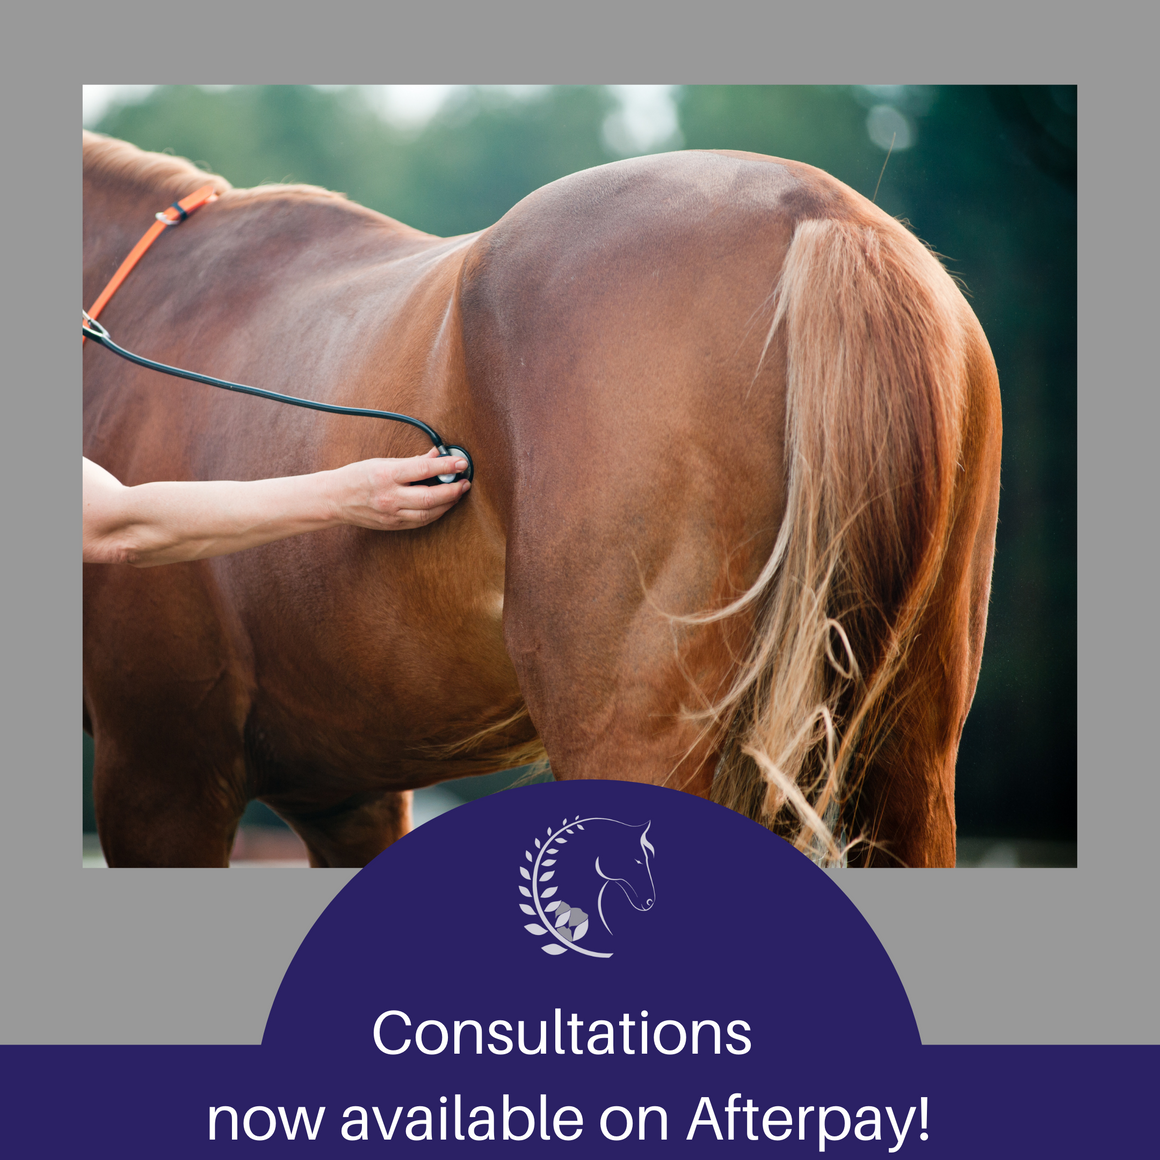 Consultation on Afterpay